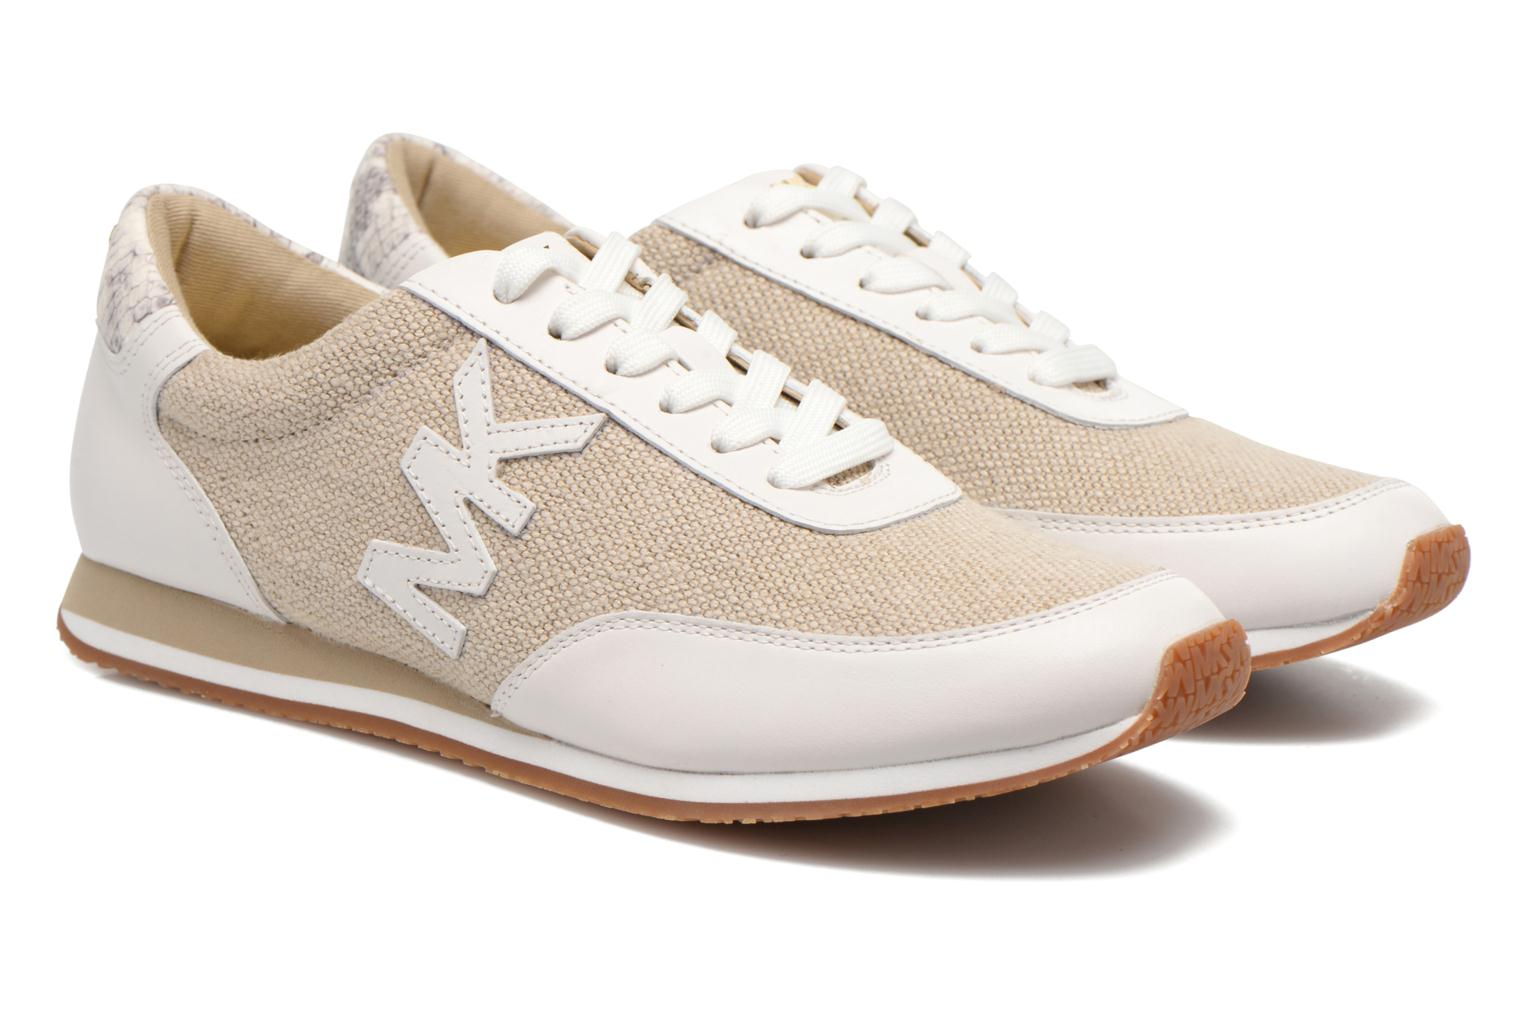 Stanton trainer Naturel 270